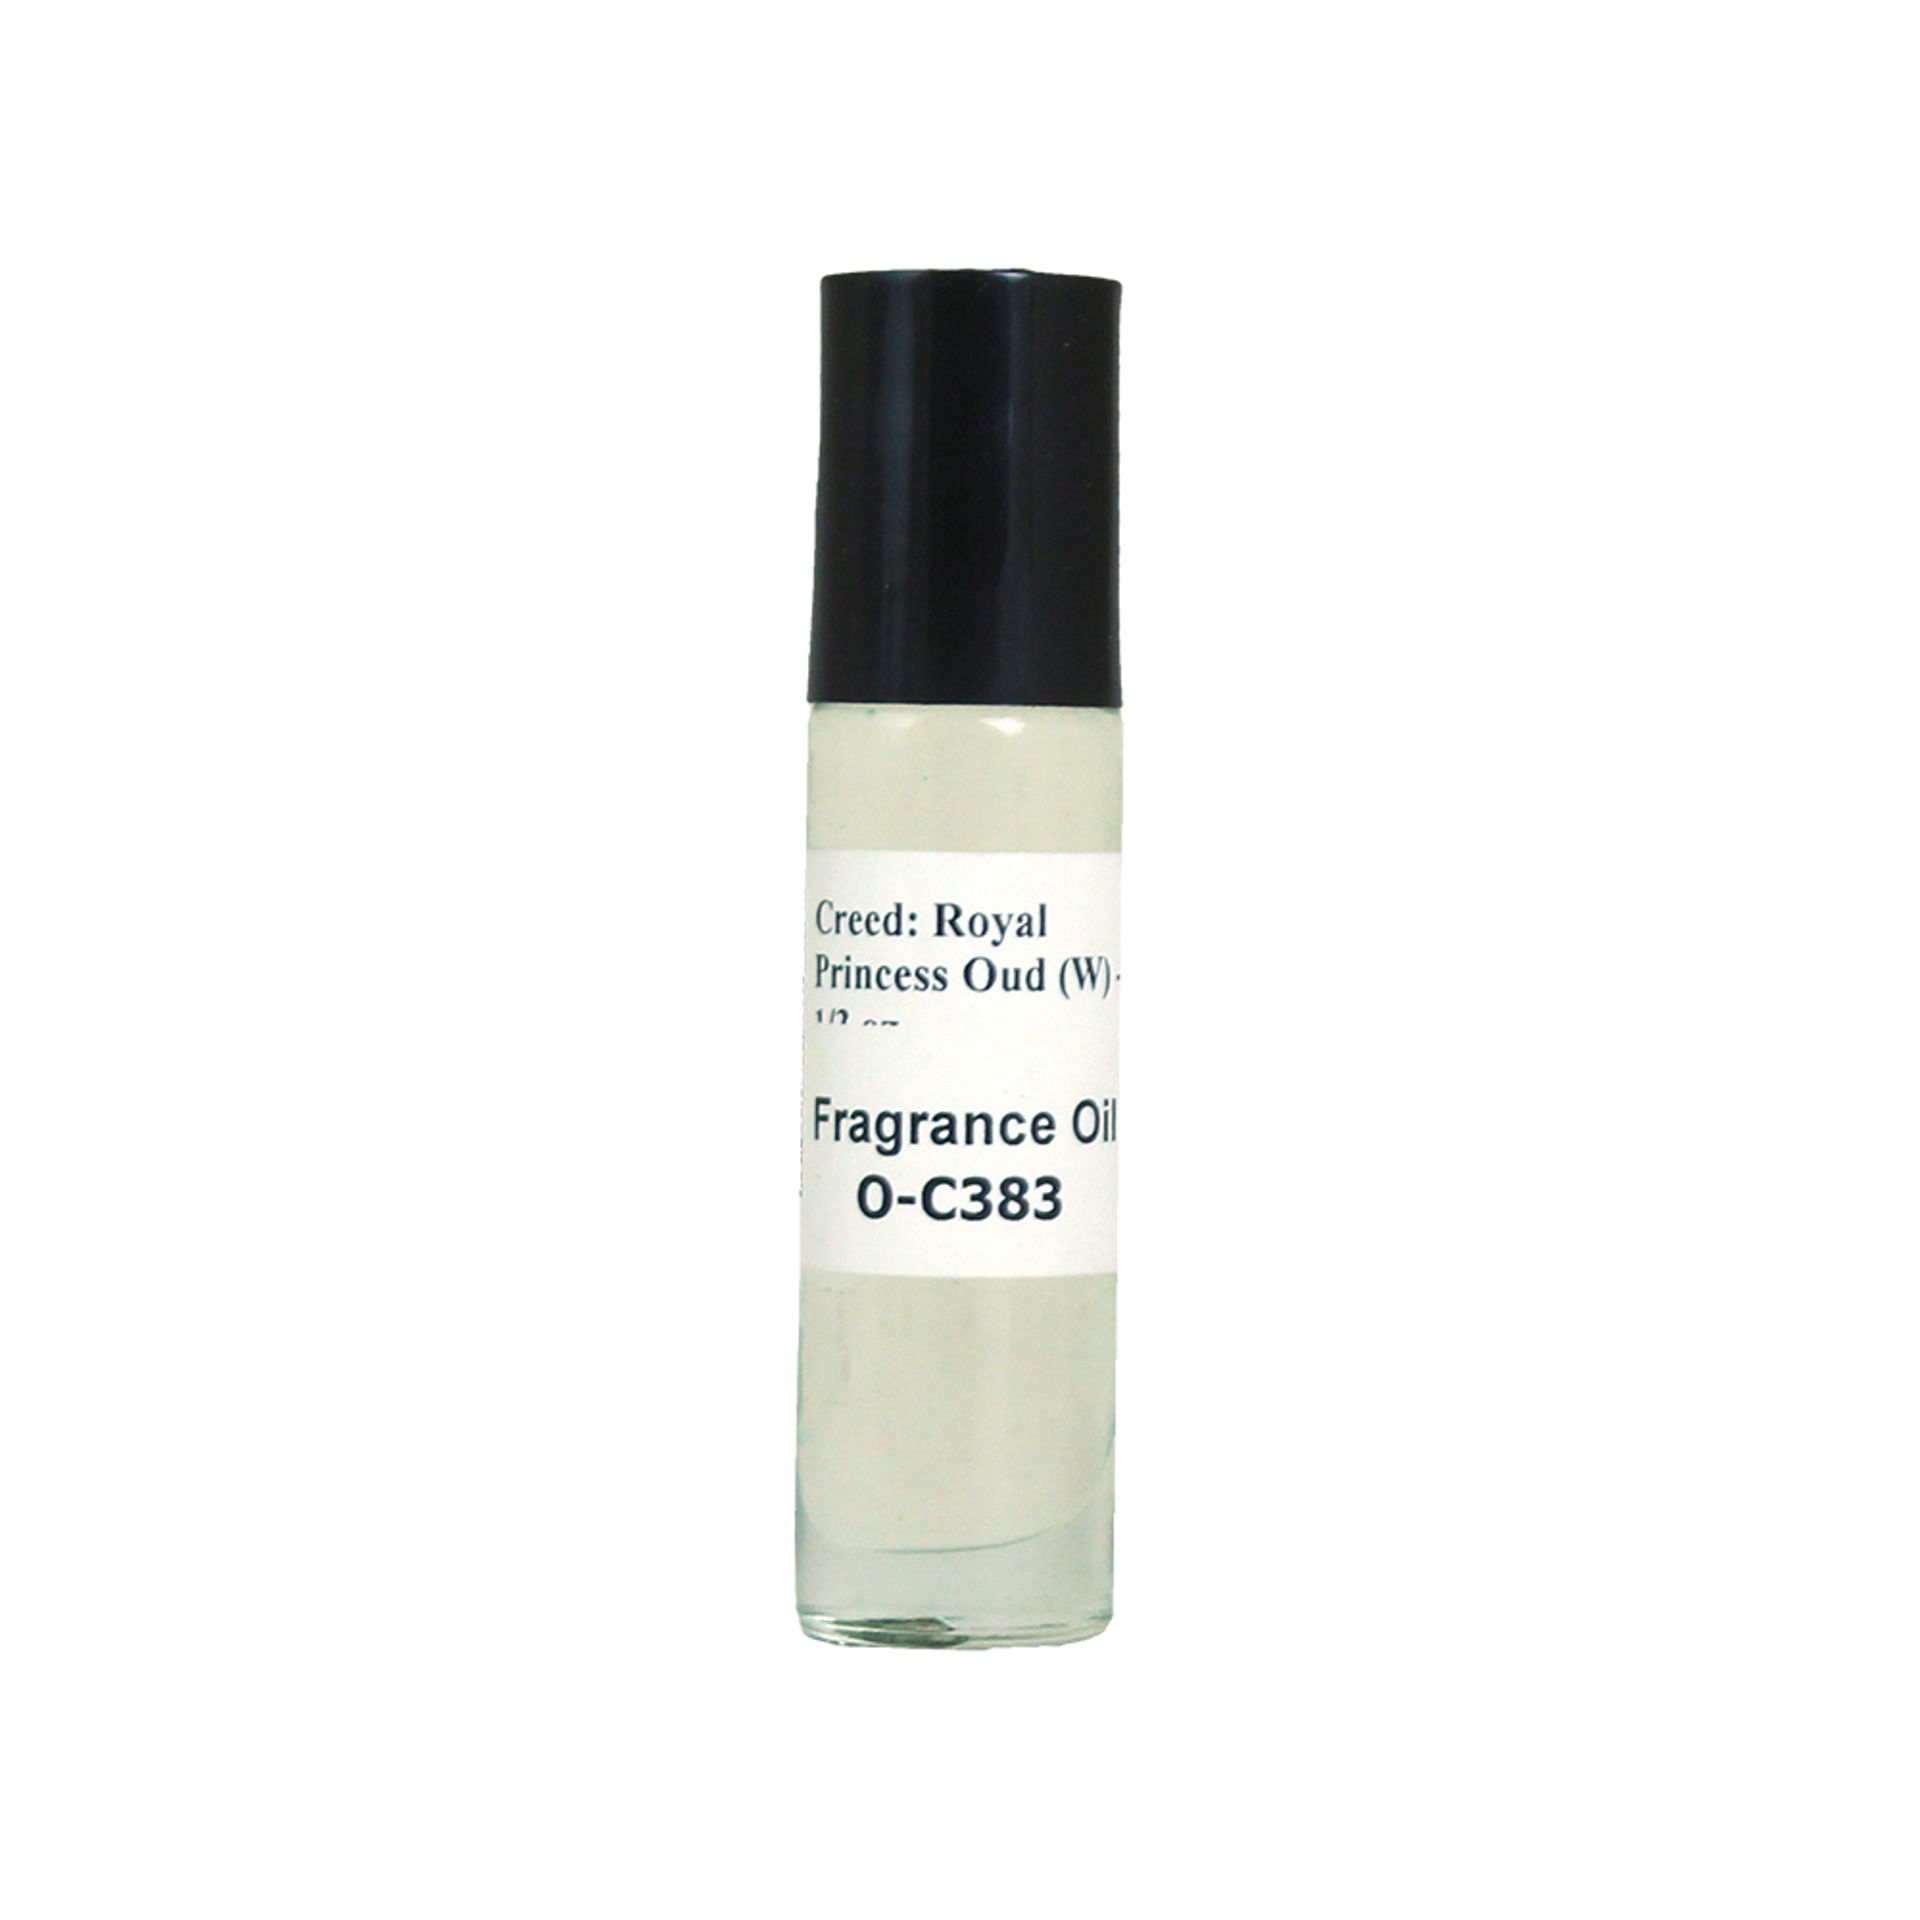 Picture of Creed: Royal Princess Oud (W) - 1/3 oz.